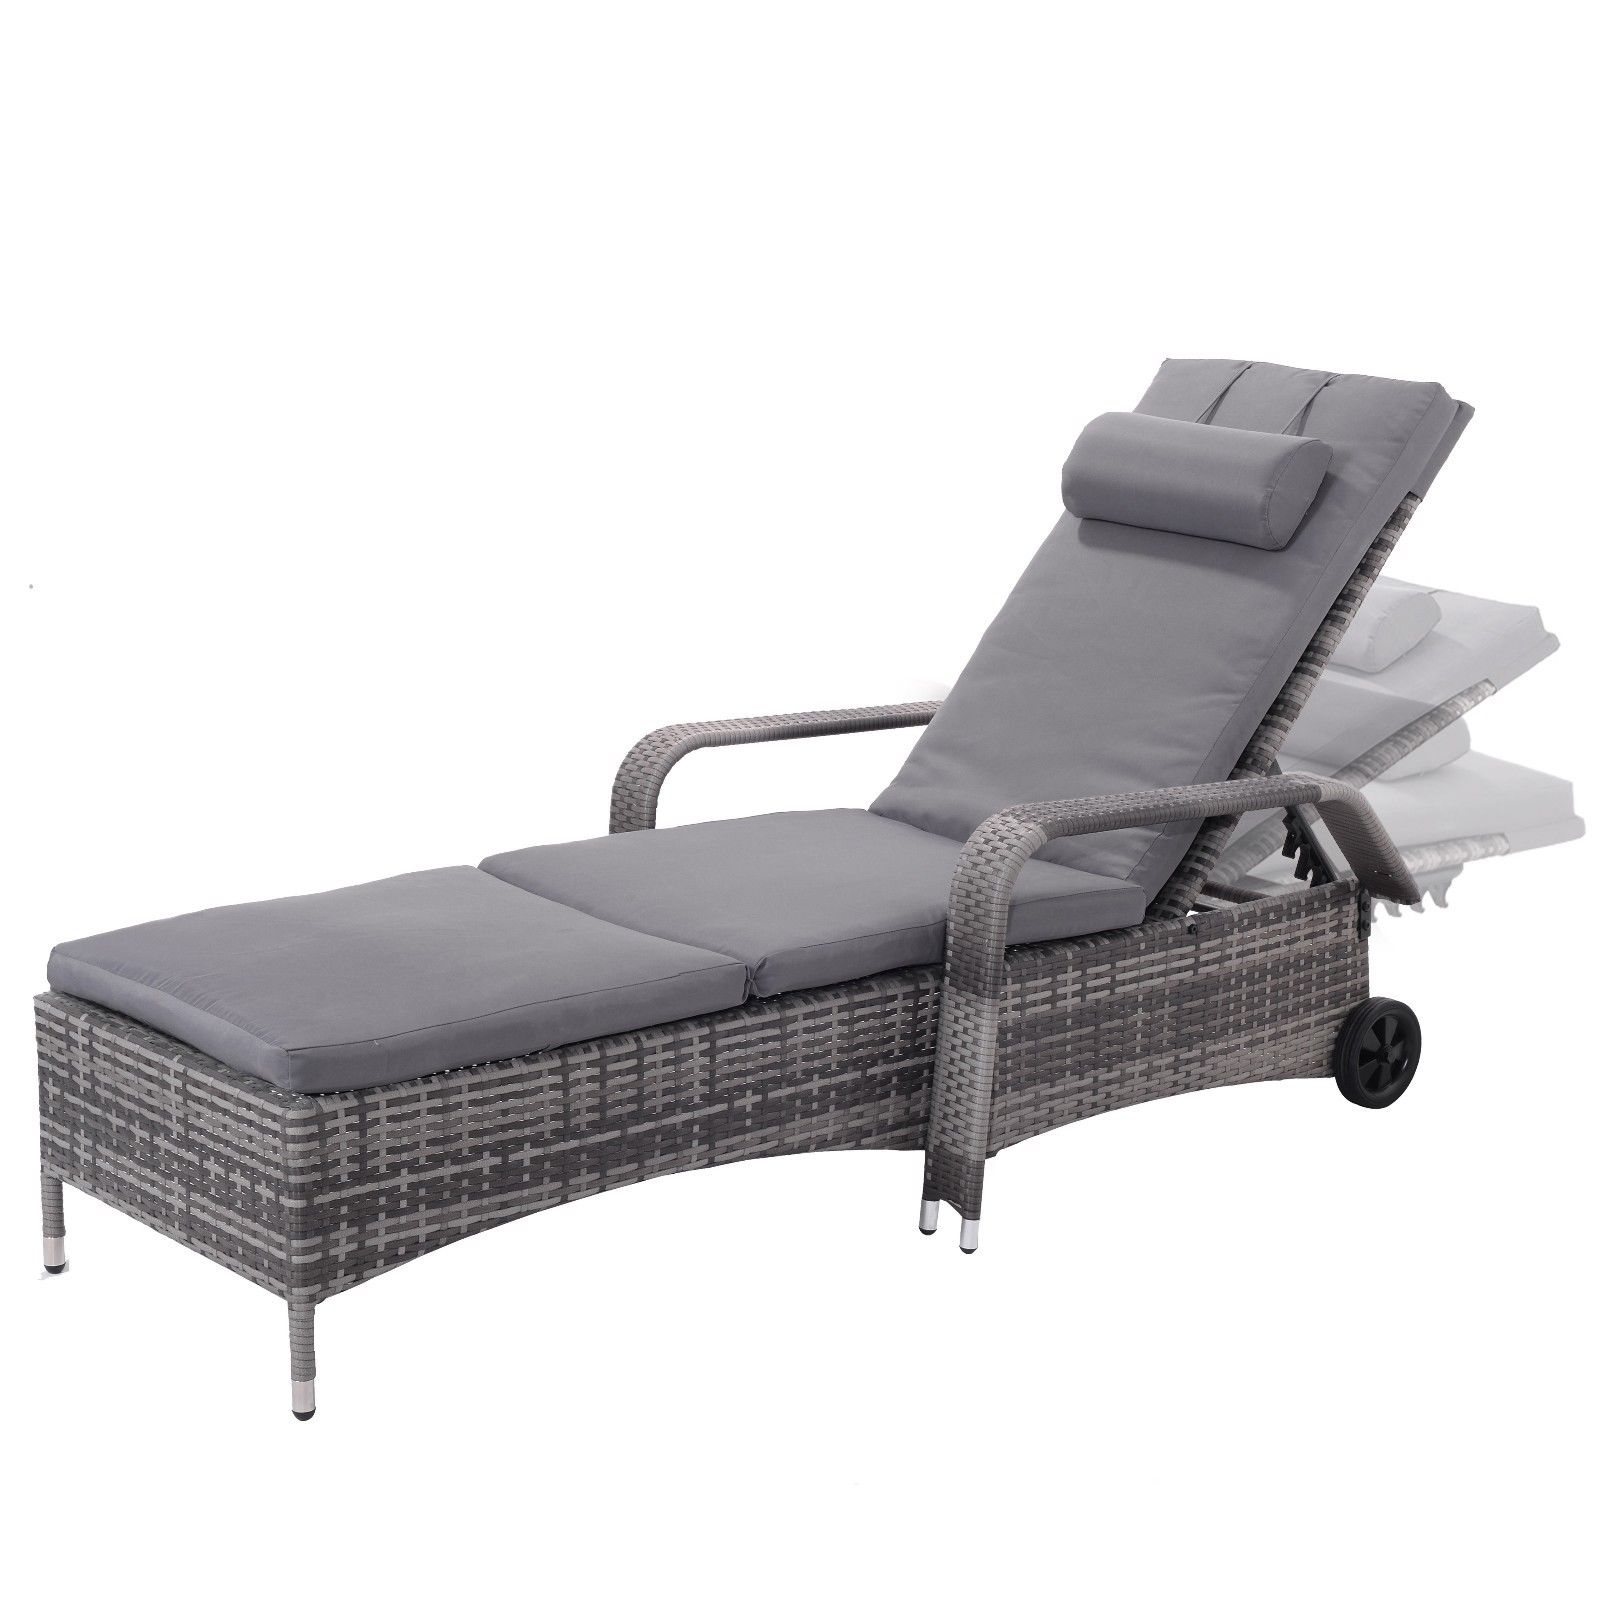 Giantex Outdoor Chaise Lounge Chair Recliner Cushioned